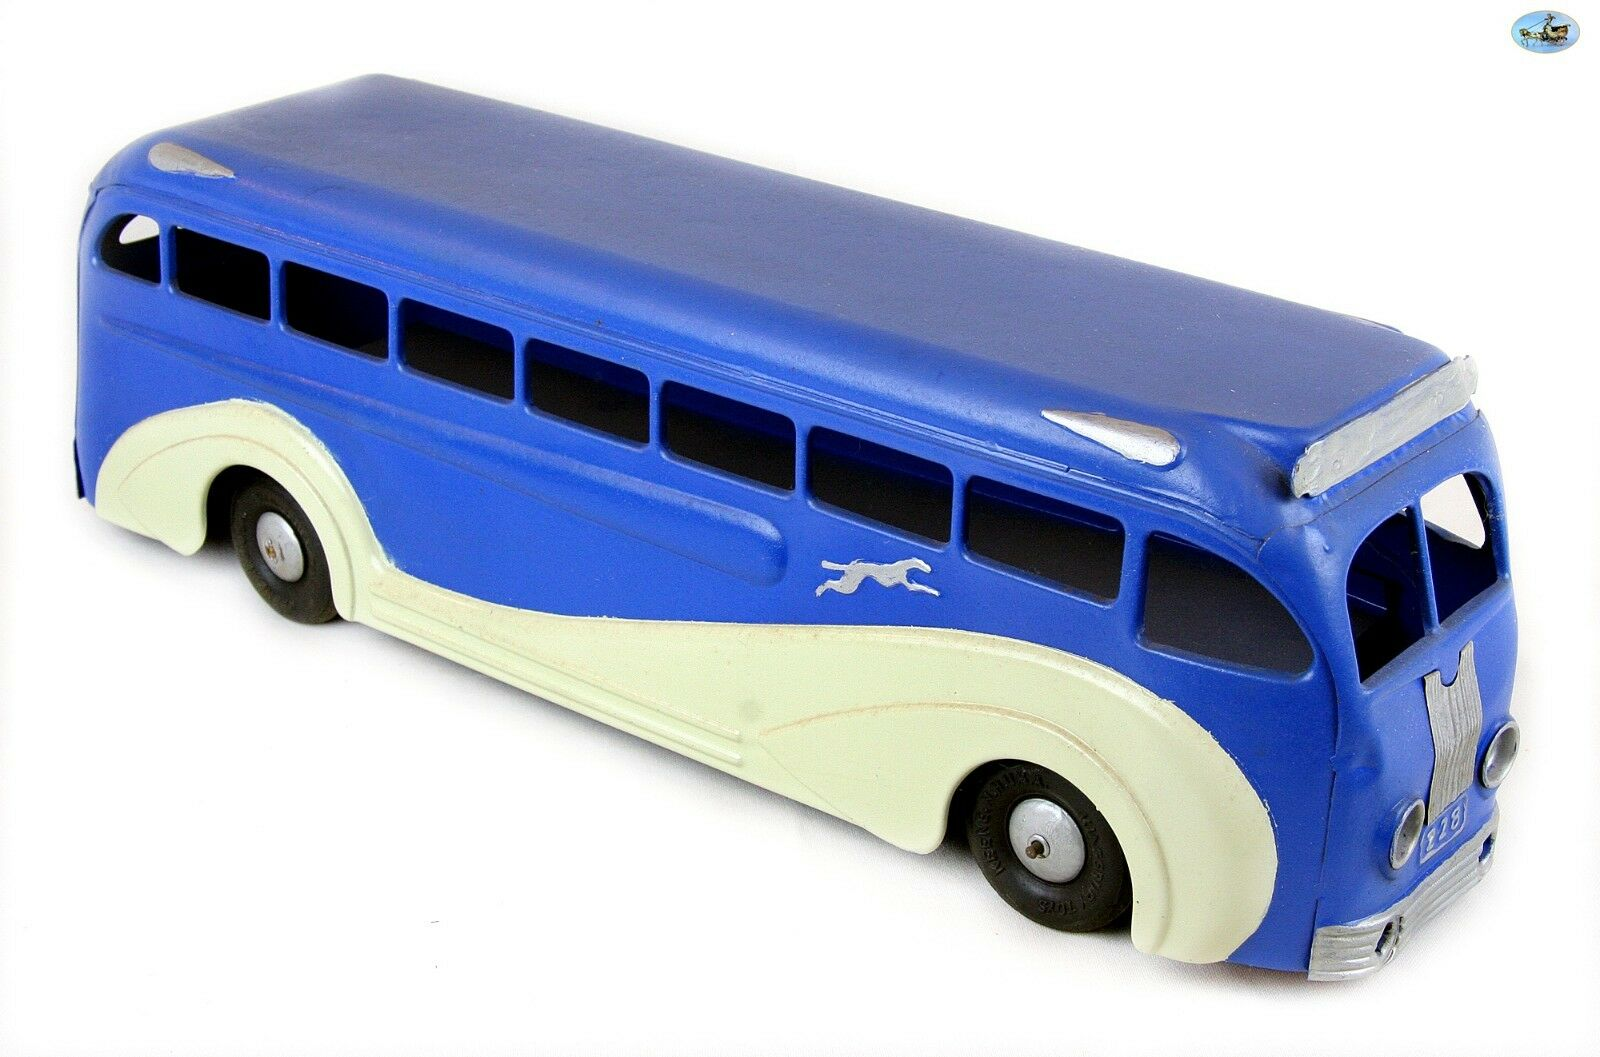 Awesome Vintage Large Restorosso KEENE N.H Station - U.S.A grigiohound Bus Toy